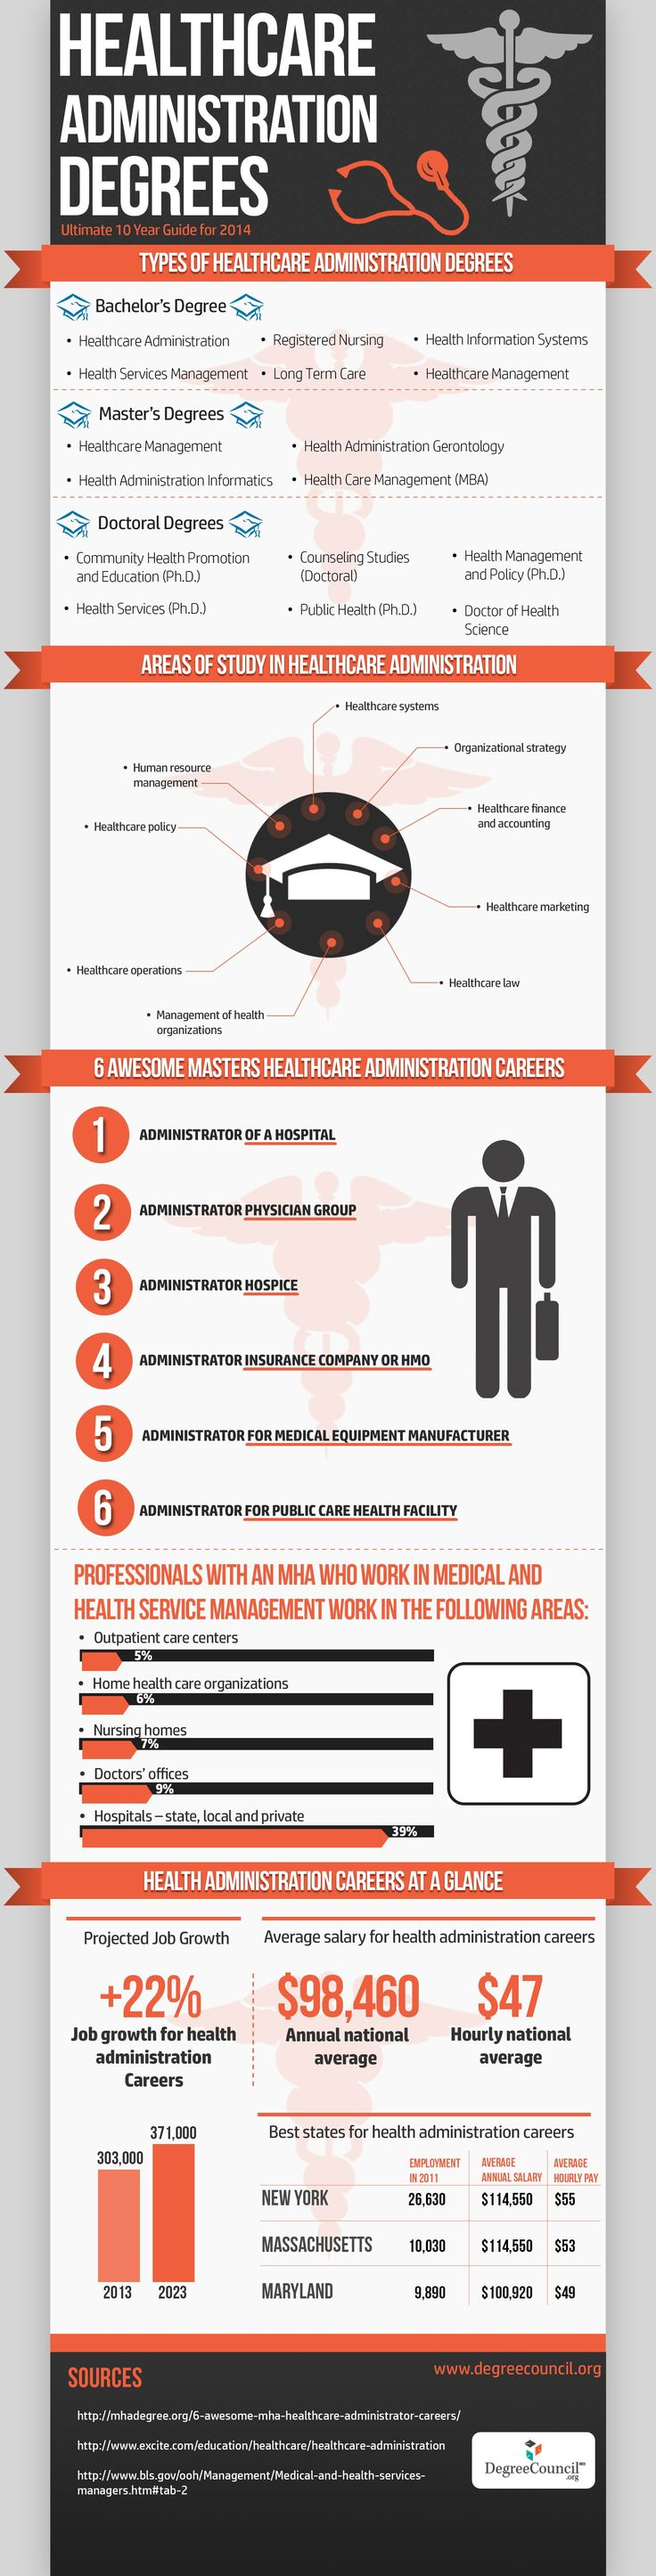 Health Care Administration Degrees - Ultimate 10-Year Guide for 2014